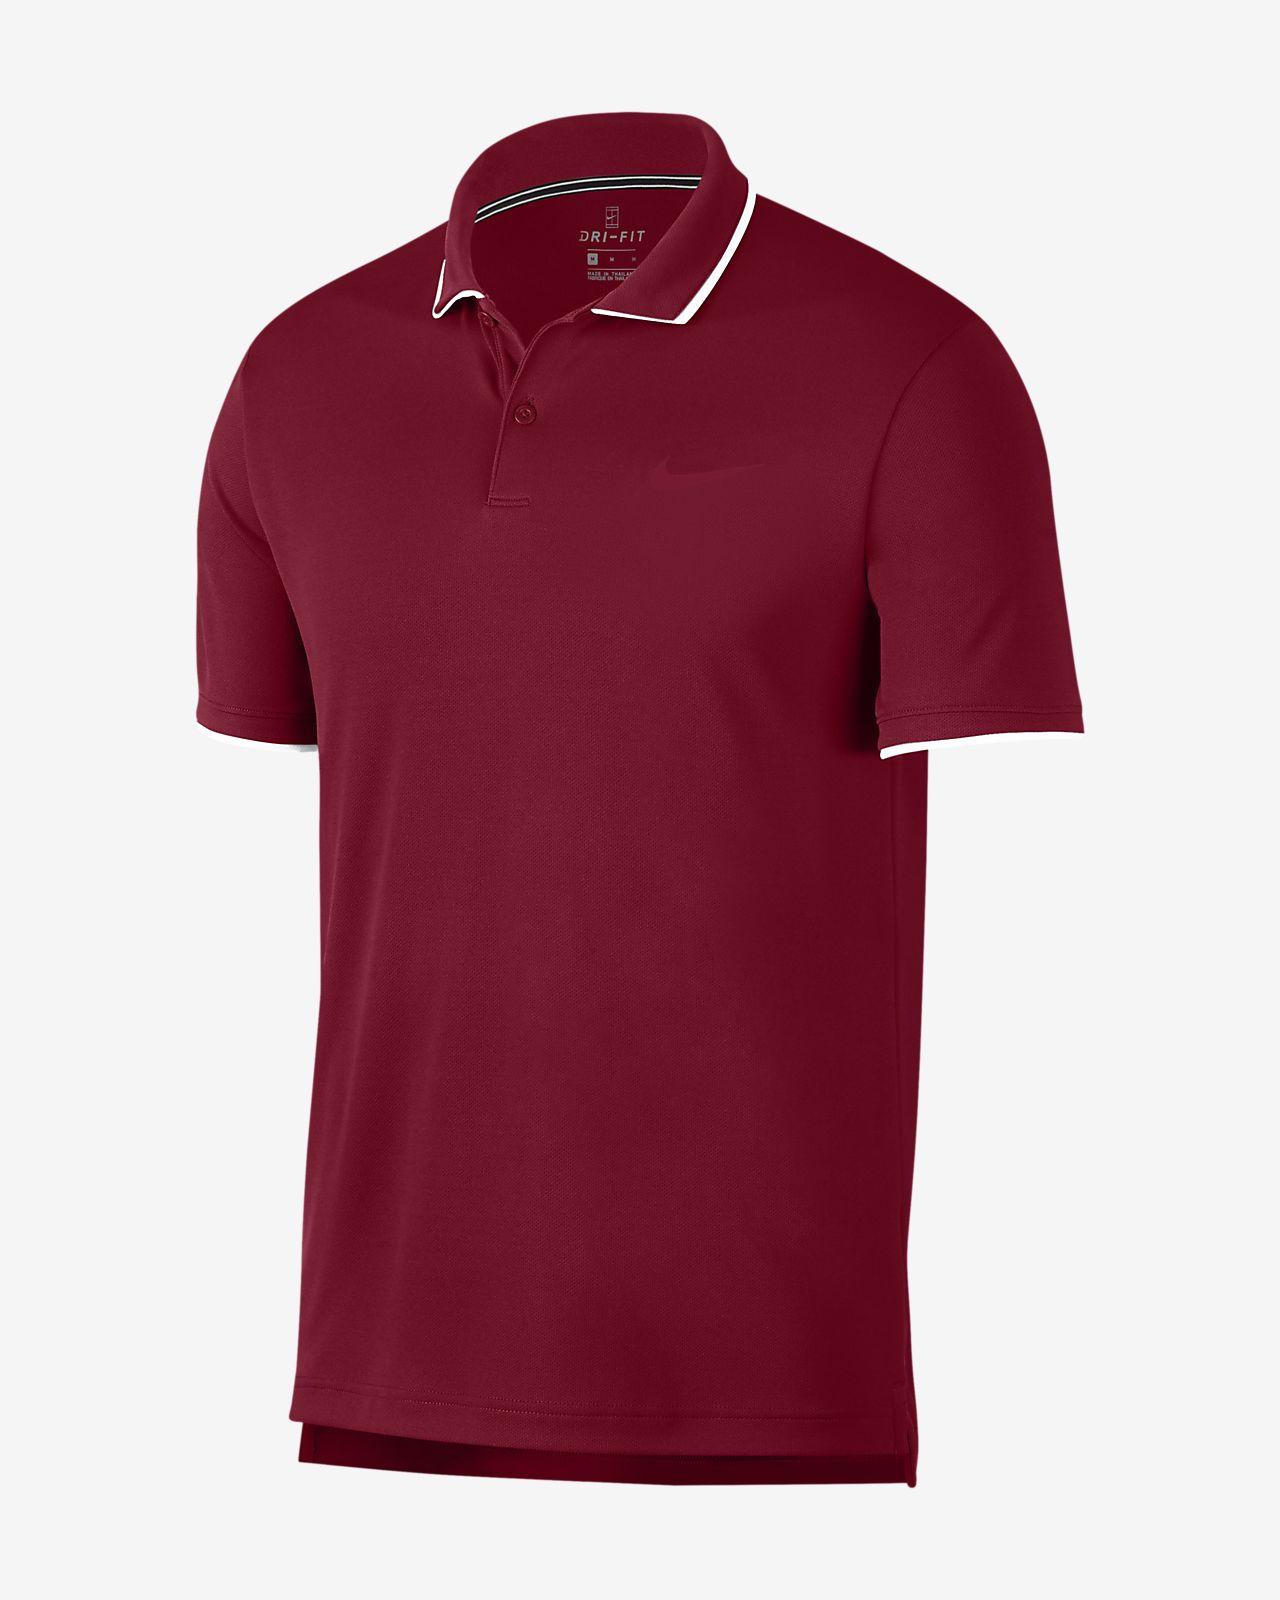 Męska koszulka polo do tenisa NikeCourt Dri-FIT